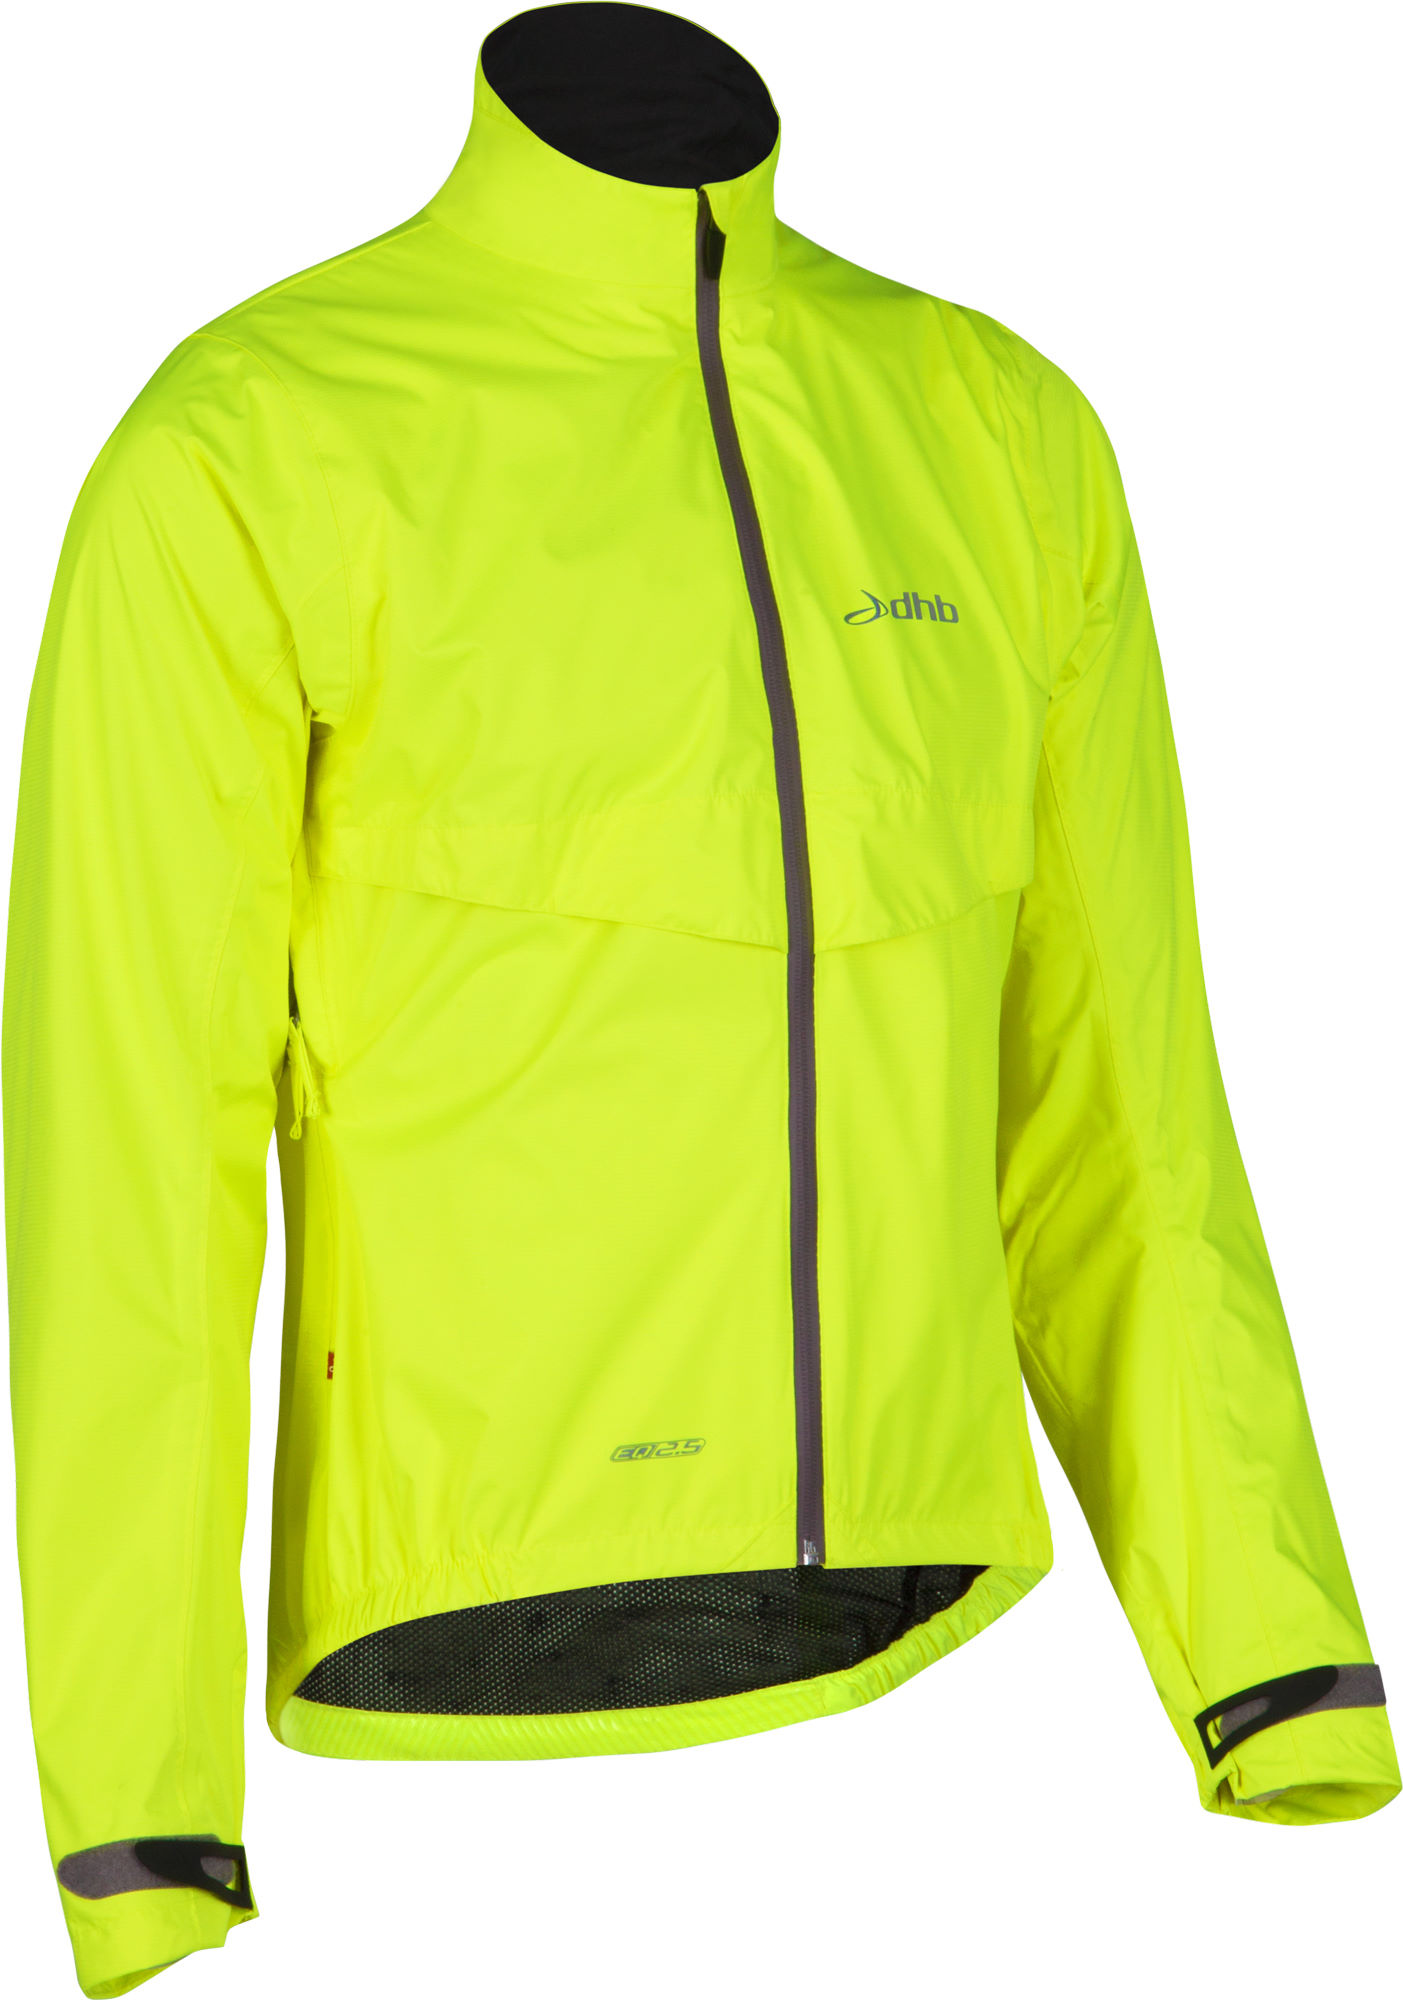 dhb EQ2.5 Fluoro Waterproof Cycling Jacket   Cycling Waterproof Jackets